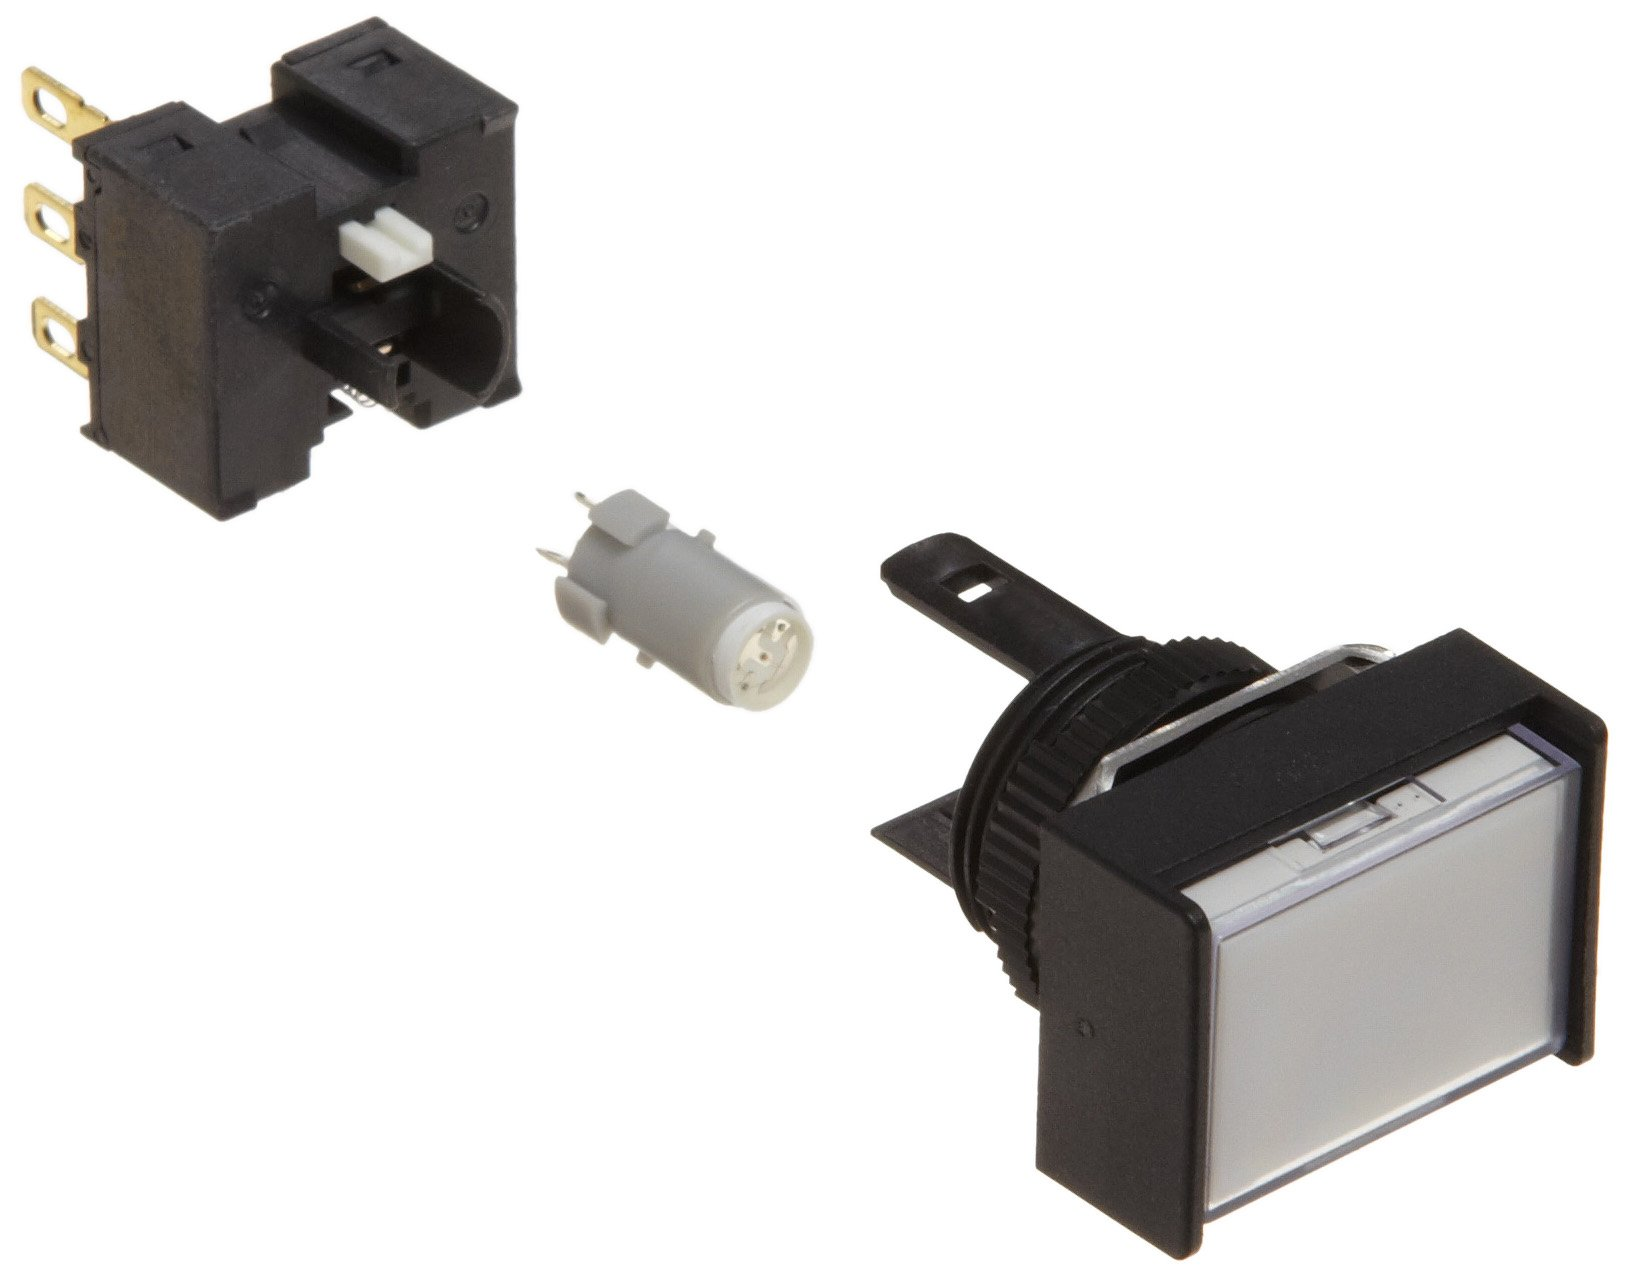 Omron A165L-JWA-24D-1 Two Way Guard Type Pushbutton and Switch, Solder Terminal, IP65 Oil-Resistant, 16mm Mounting Aperture, LED Lighted, Alternate Operation, Rectangular, White, 24 VDC Rated Voltage, Single Pole Double Throw